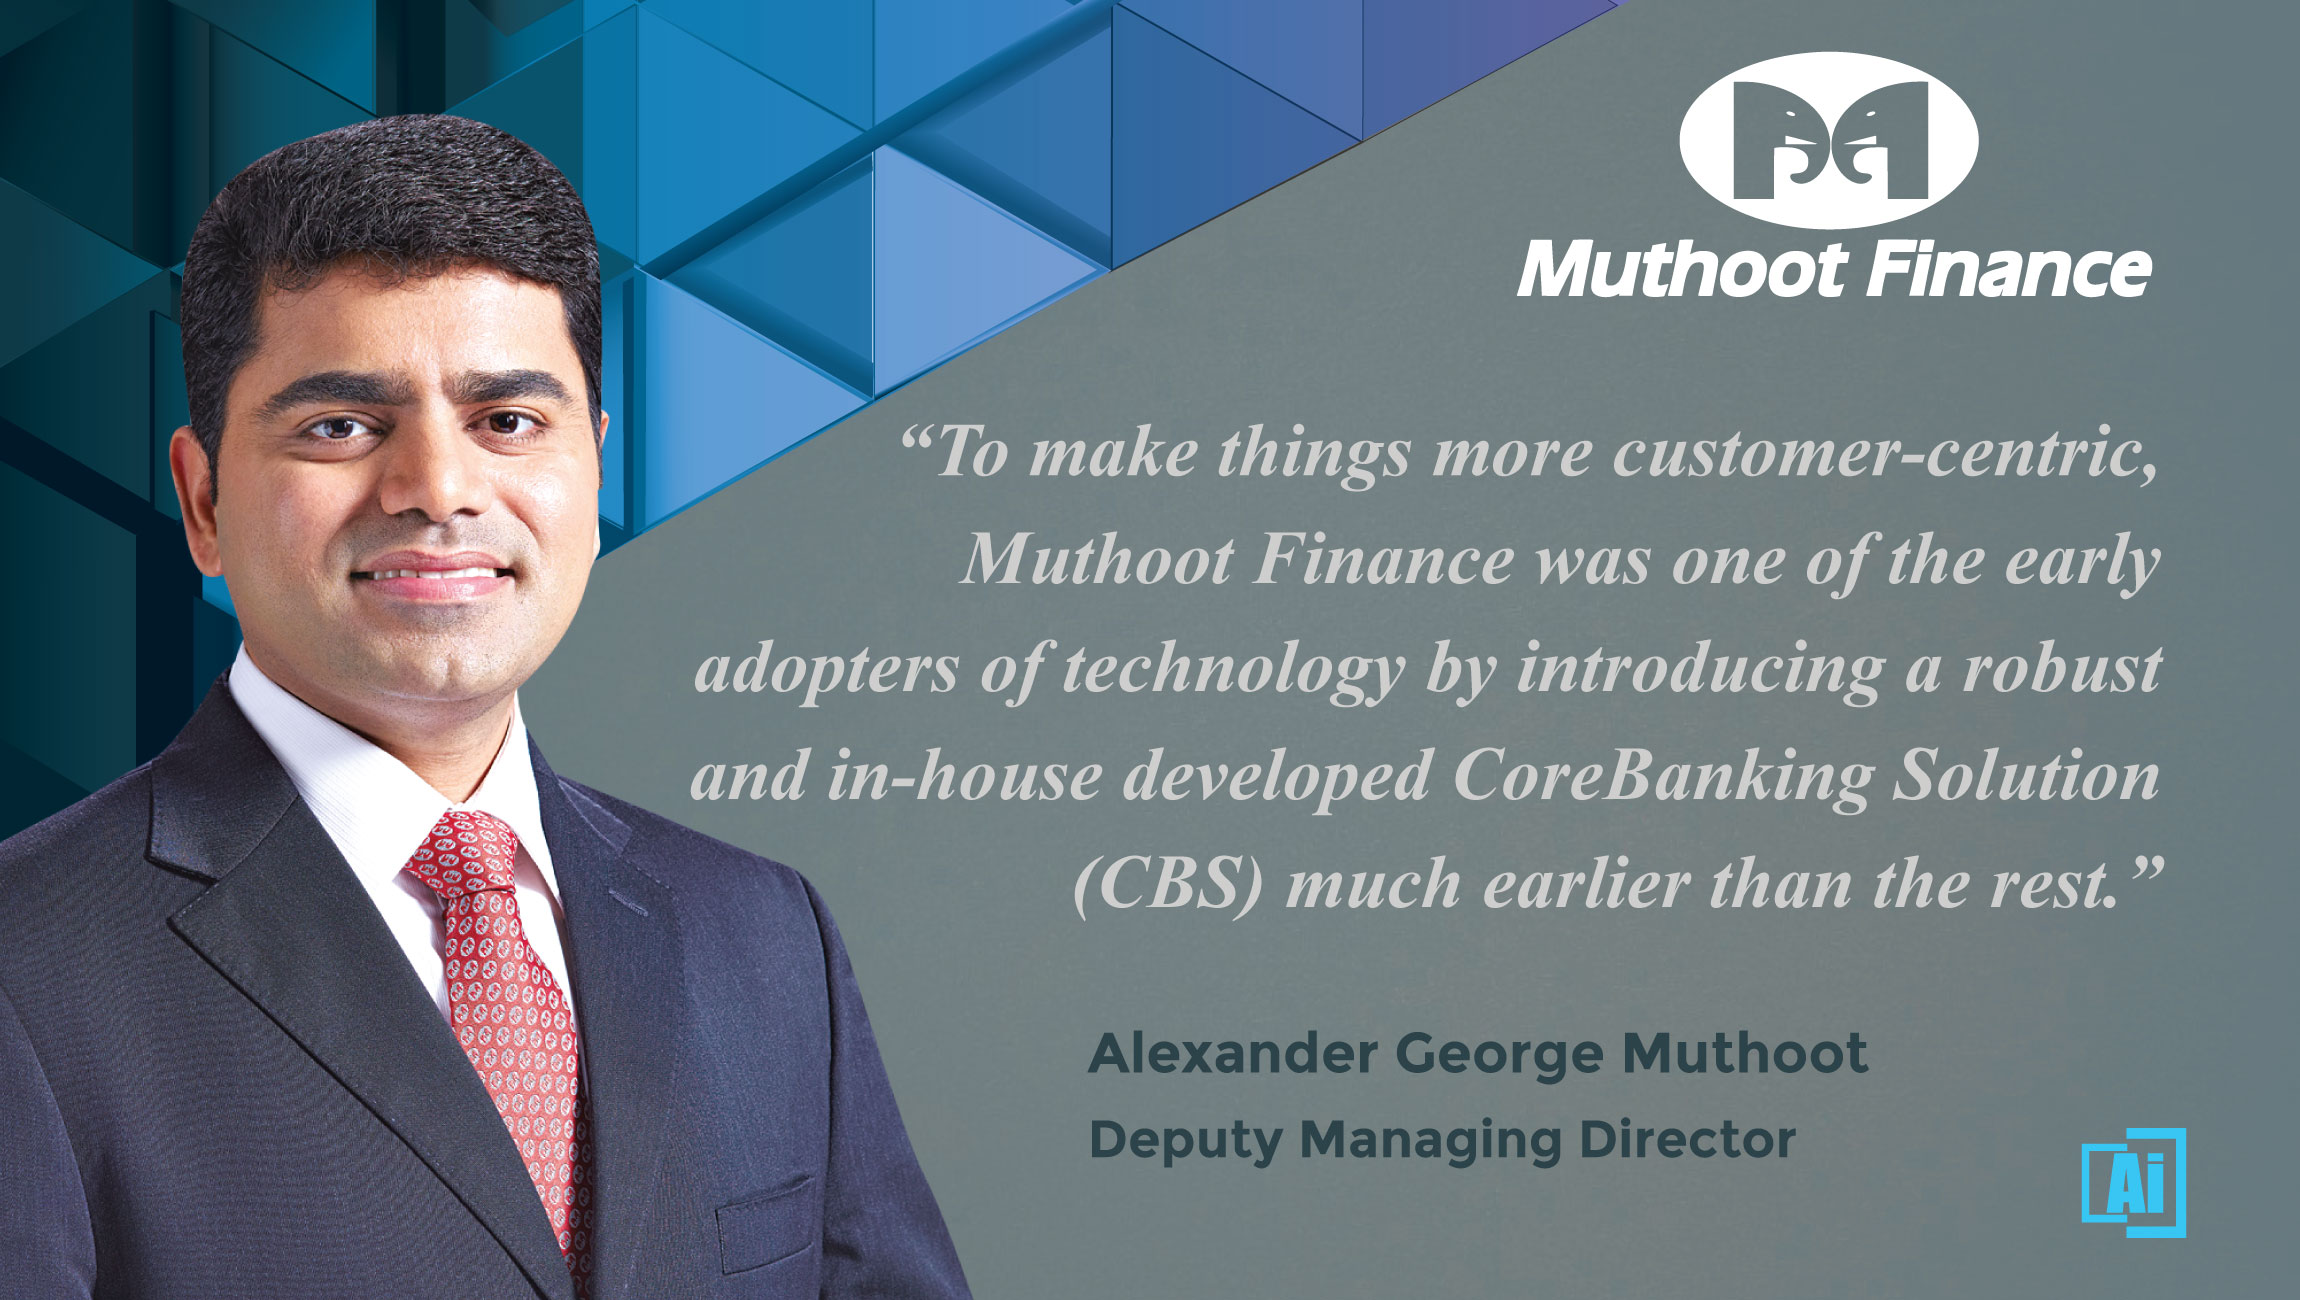 AiThority Interview with Alexander George Muthoot, Deputy Managing Director, Muthoot Finance